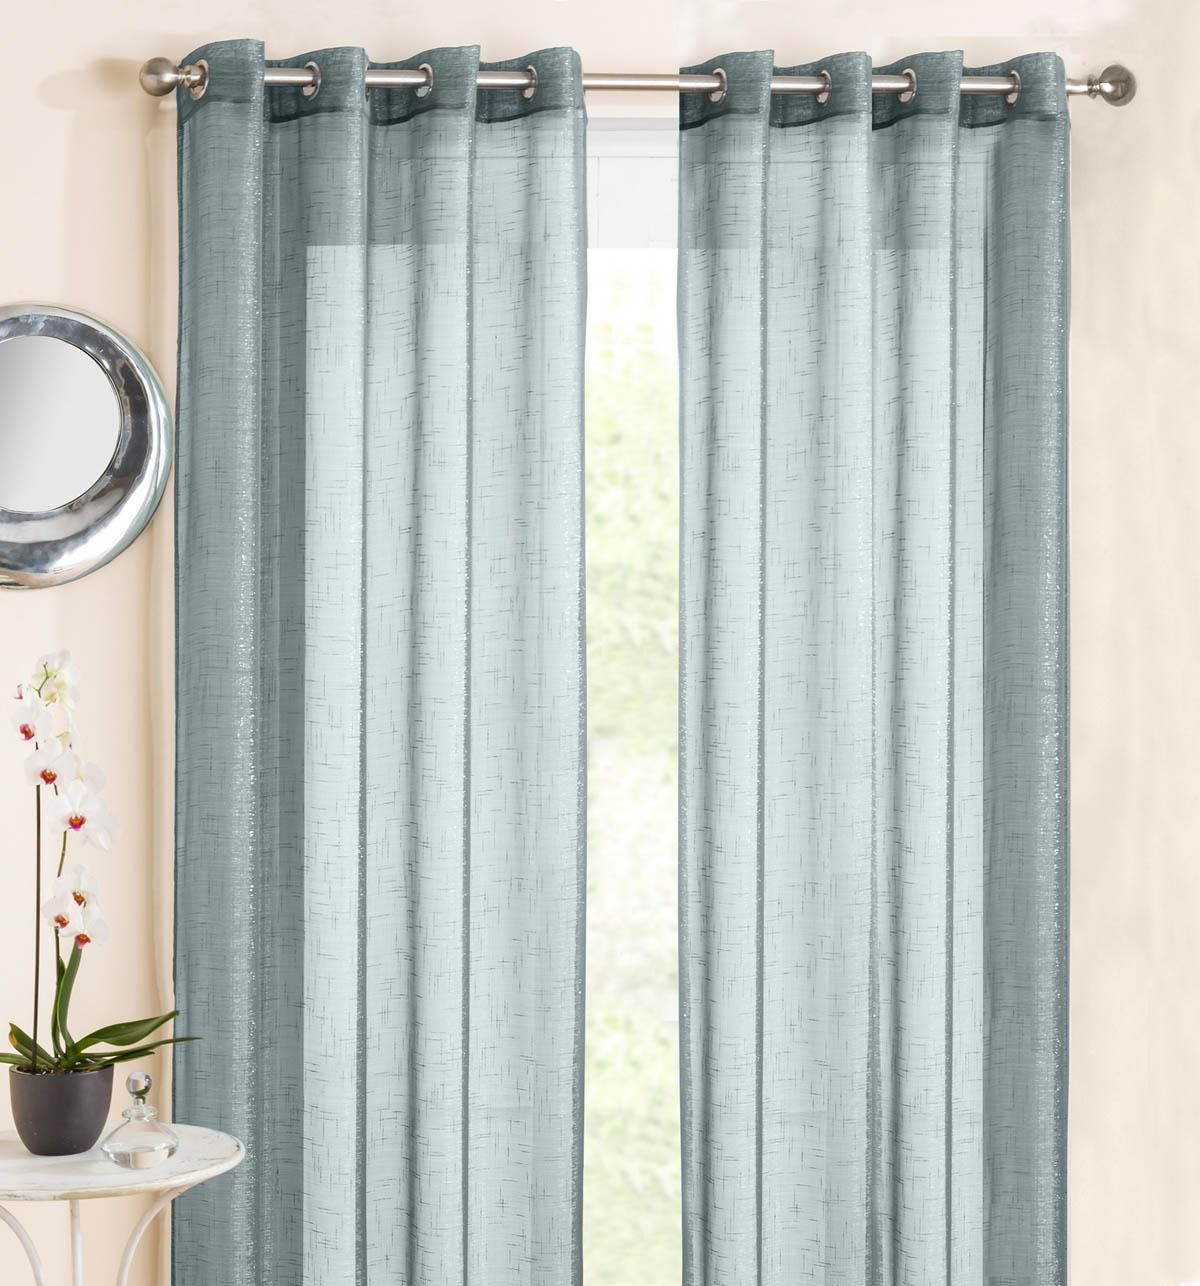 Slot top voile pair olive cheap green curtain voile uk delivery - Marrakesh Eyelet Voile Panel Duck Egg Blue Affordable Curtain Voiles Uk Delivery